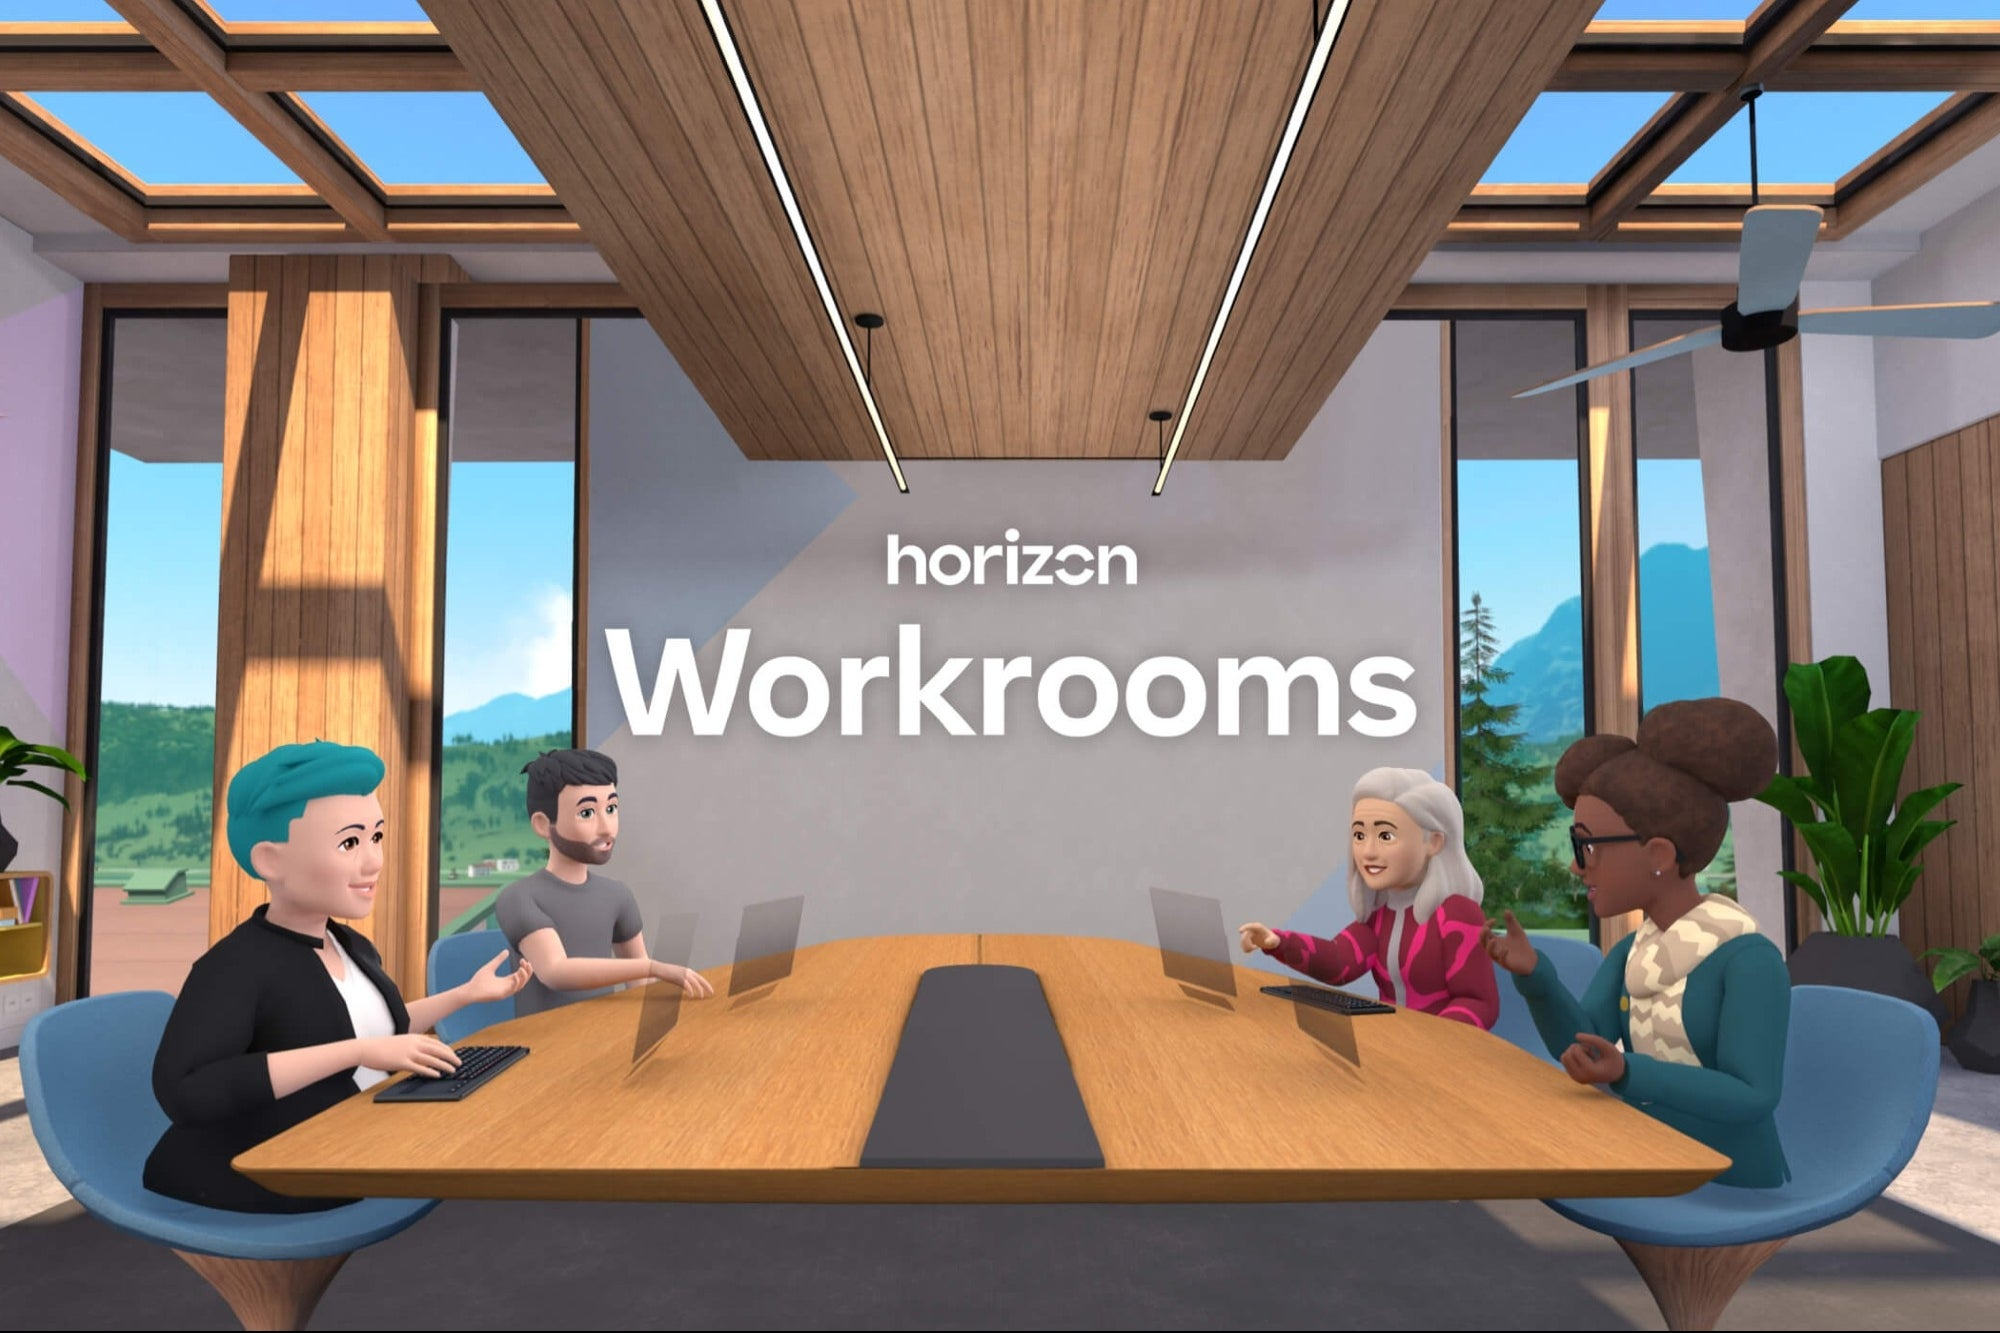 How to use Facebook Workrooms, the 'virtual office' within Mark Zuckerberg's 'metaverse'